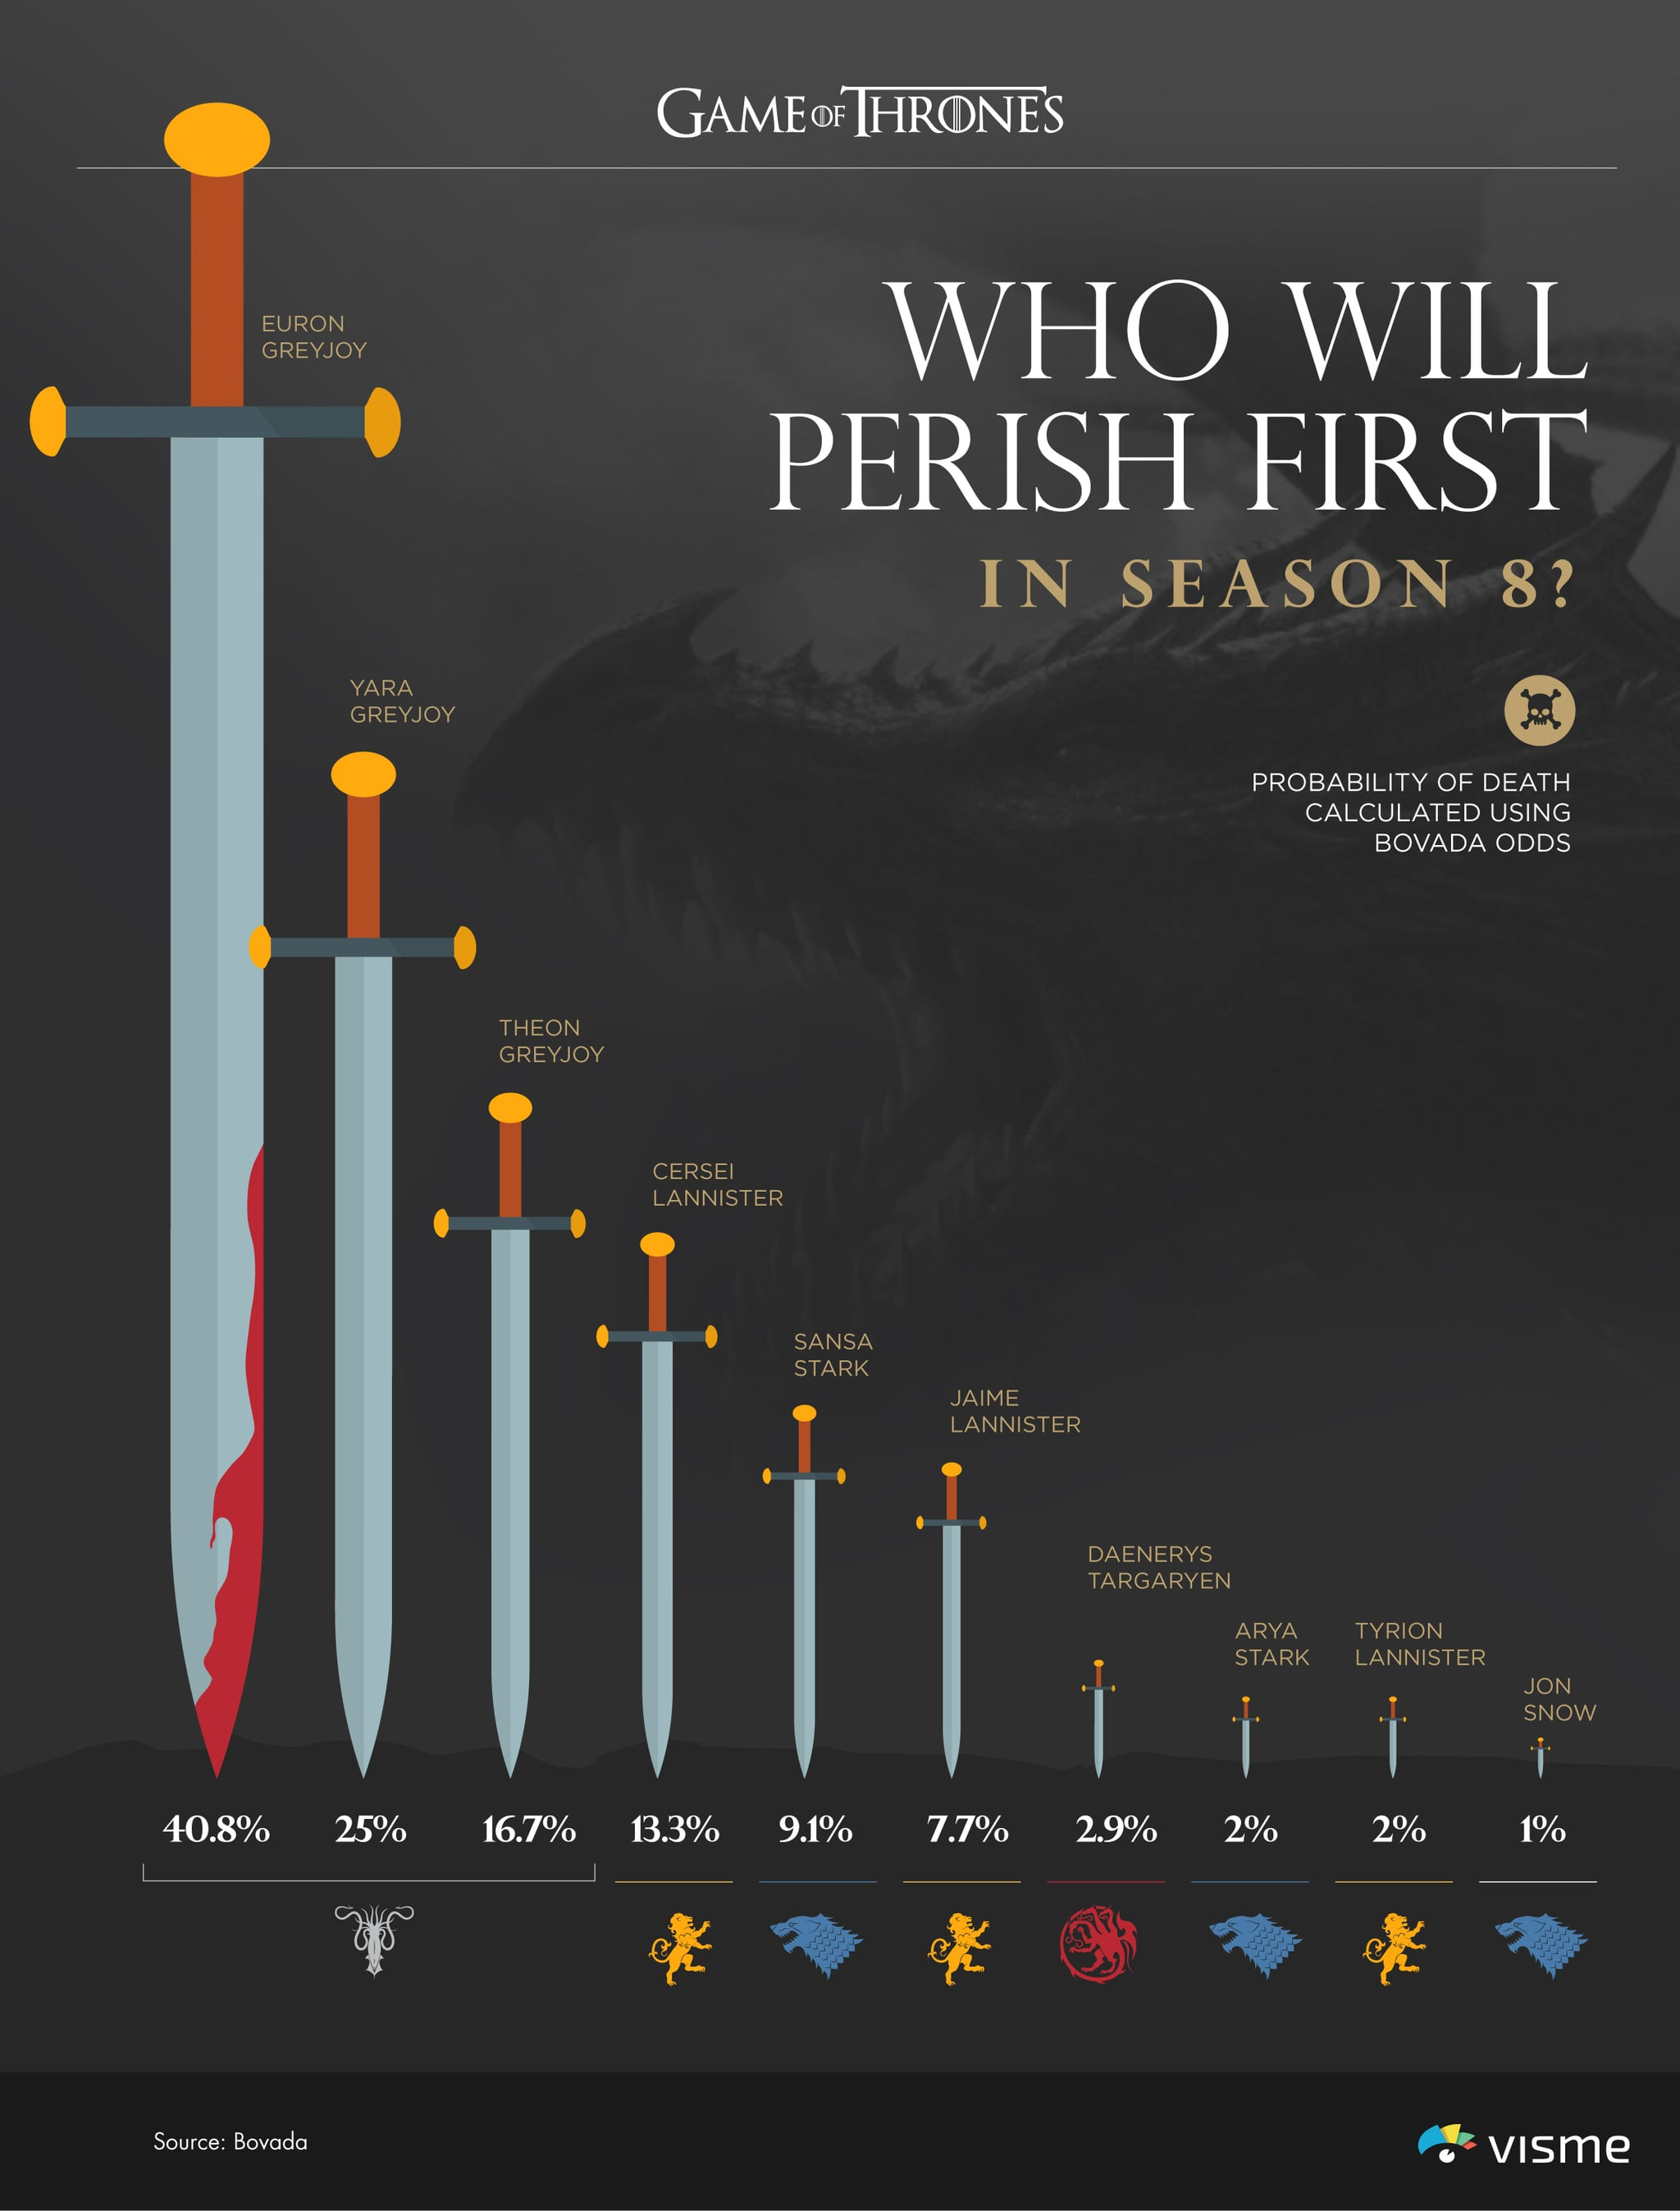 game of thrones season 8 graphs popsugar entertainment. Black Bedroom Furniture Sets. Home Design Ideas